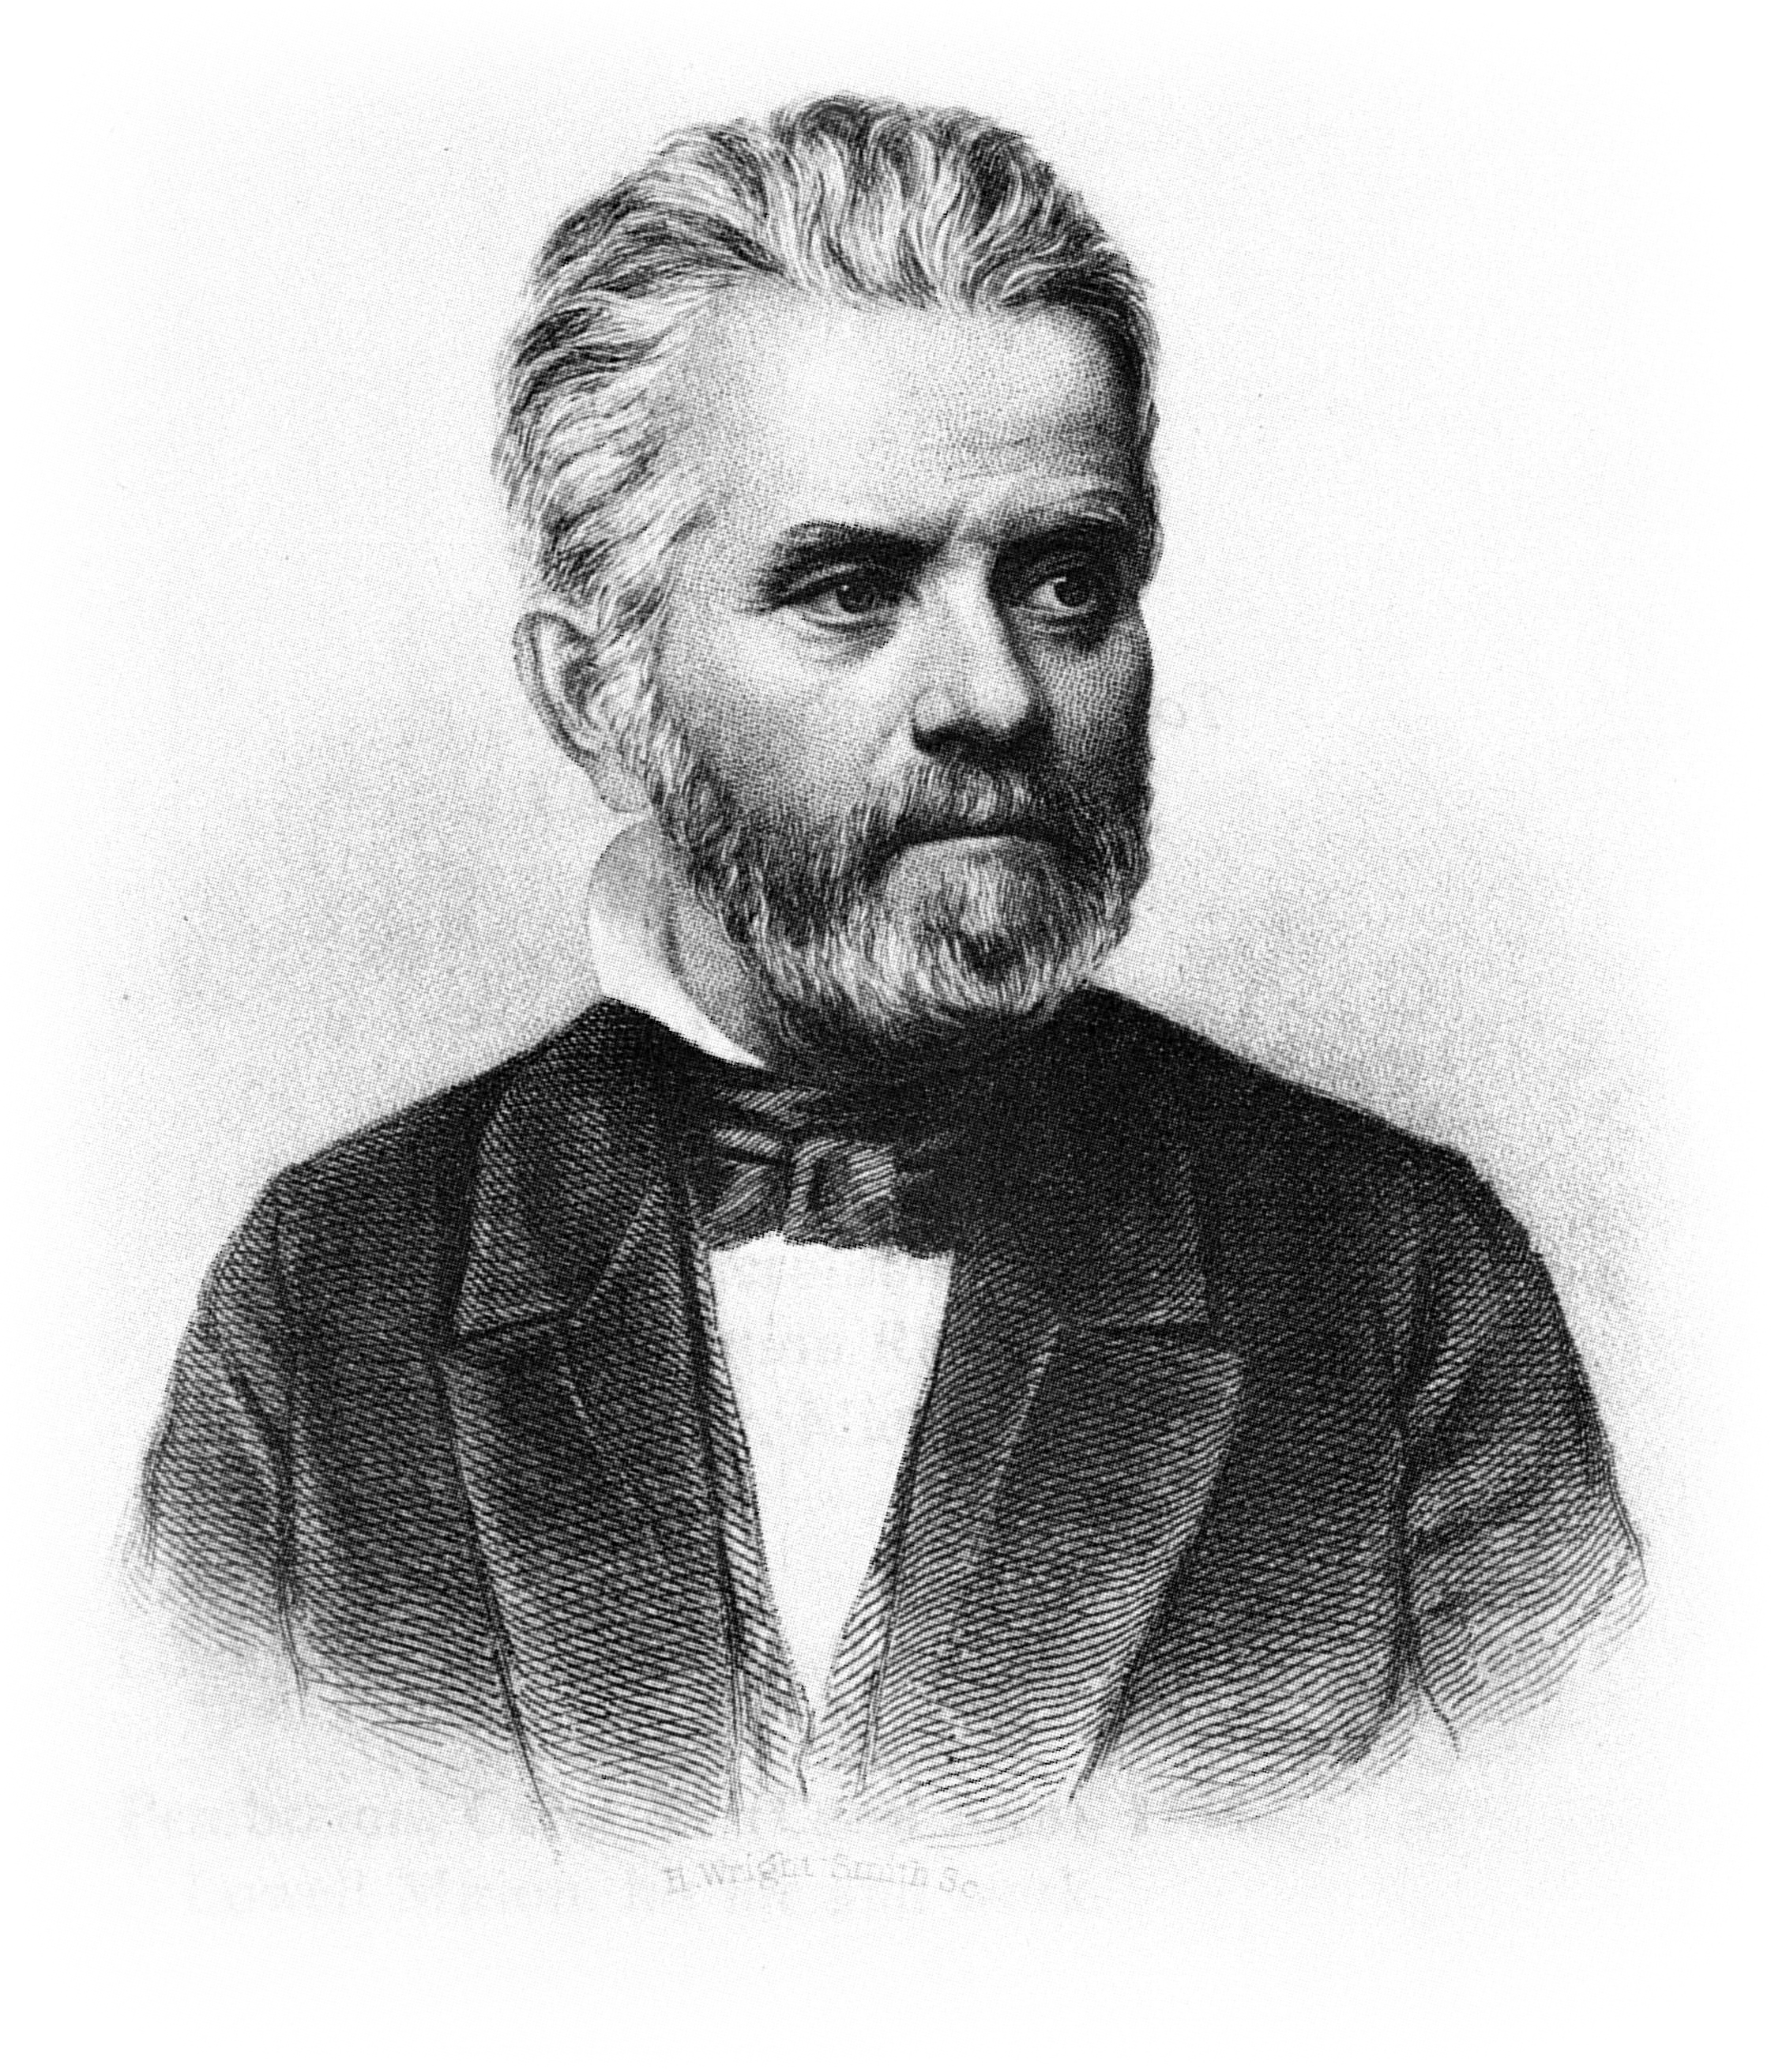 Lowell Mason , ca. 1840, engraved by H. Wright Smith, Boston Public Library.